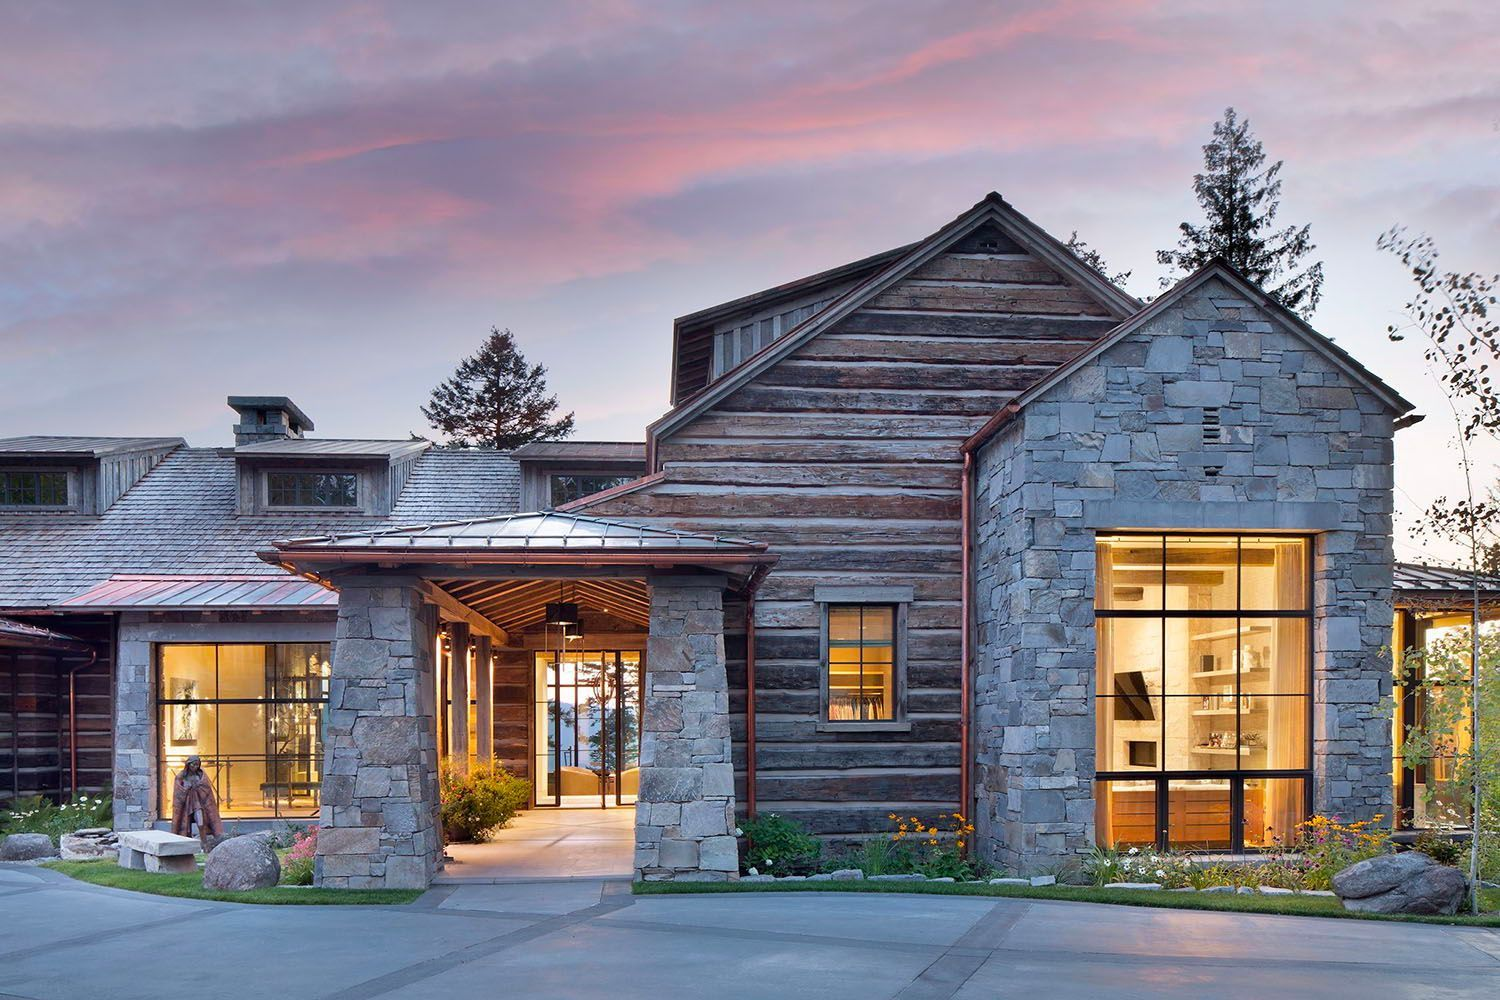 Idyllic Mountainside Home Has Breathtaking Views Of Rocky Mountains In 2021 Montana Homes Craftsman House Plans Craftsman House